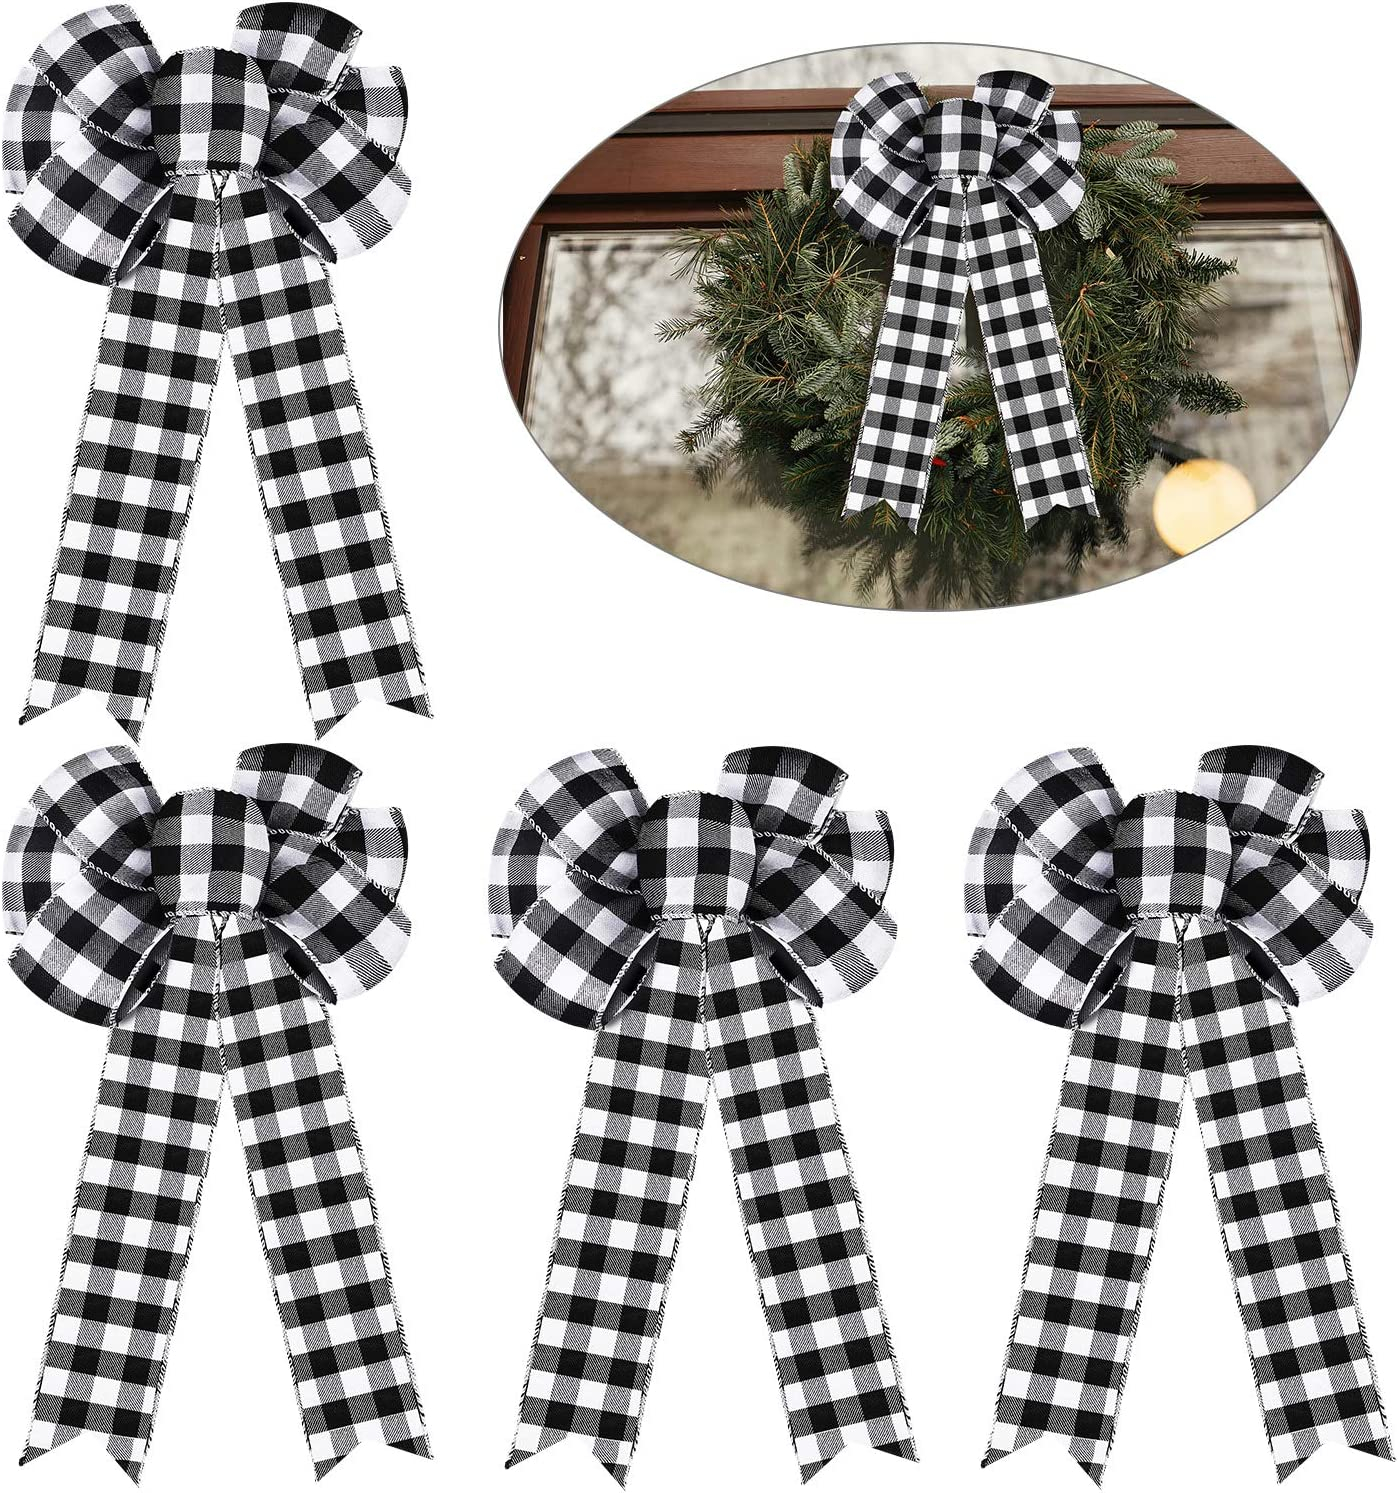 Syhood 4 Pieces 10 Inch Plaid Bow Black and White Large Buffalo Check Fall Christmas Tree Wreath Bow for Thanksgiving Basket Party Yard Decoration